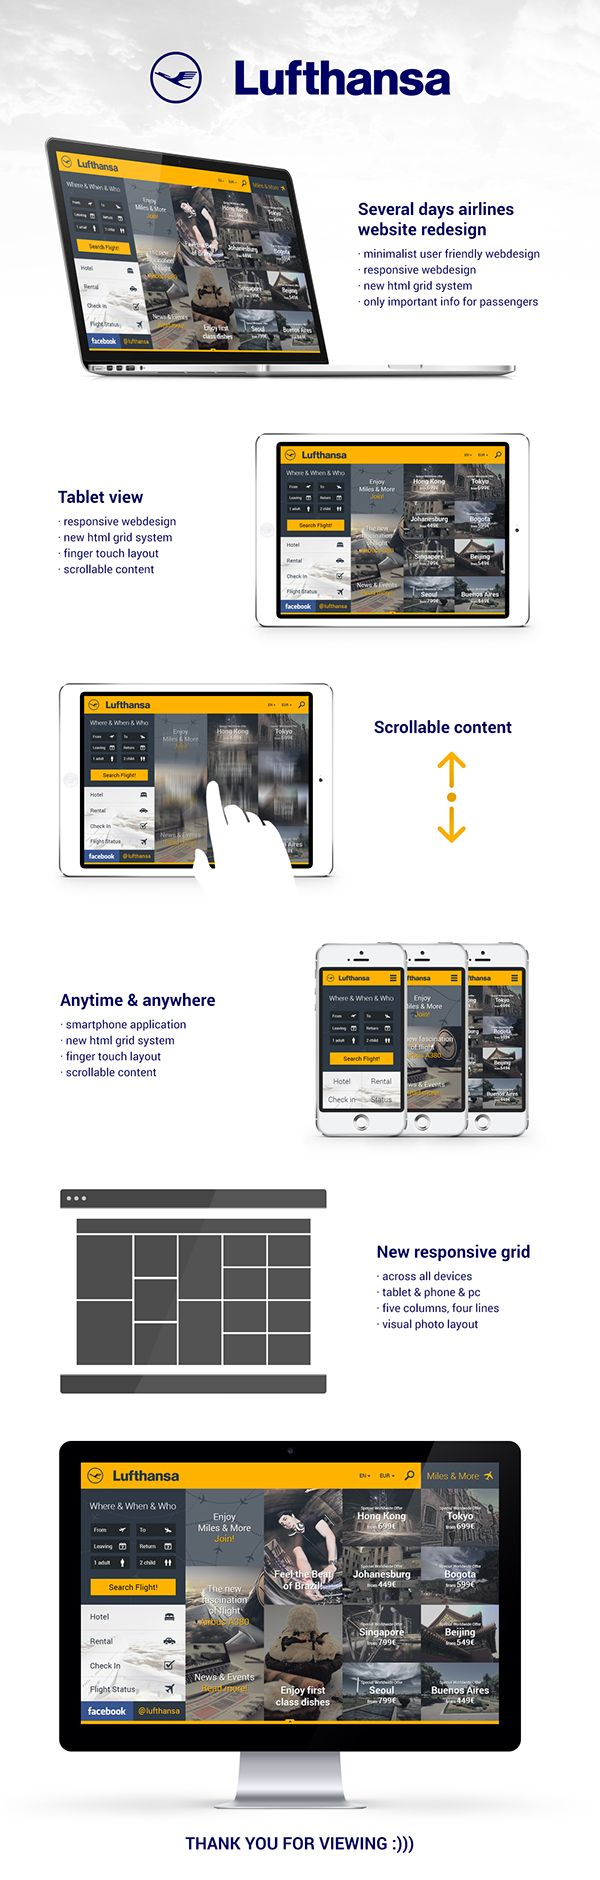 Lufthansa Airlines Website Case Study on Behance